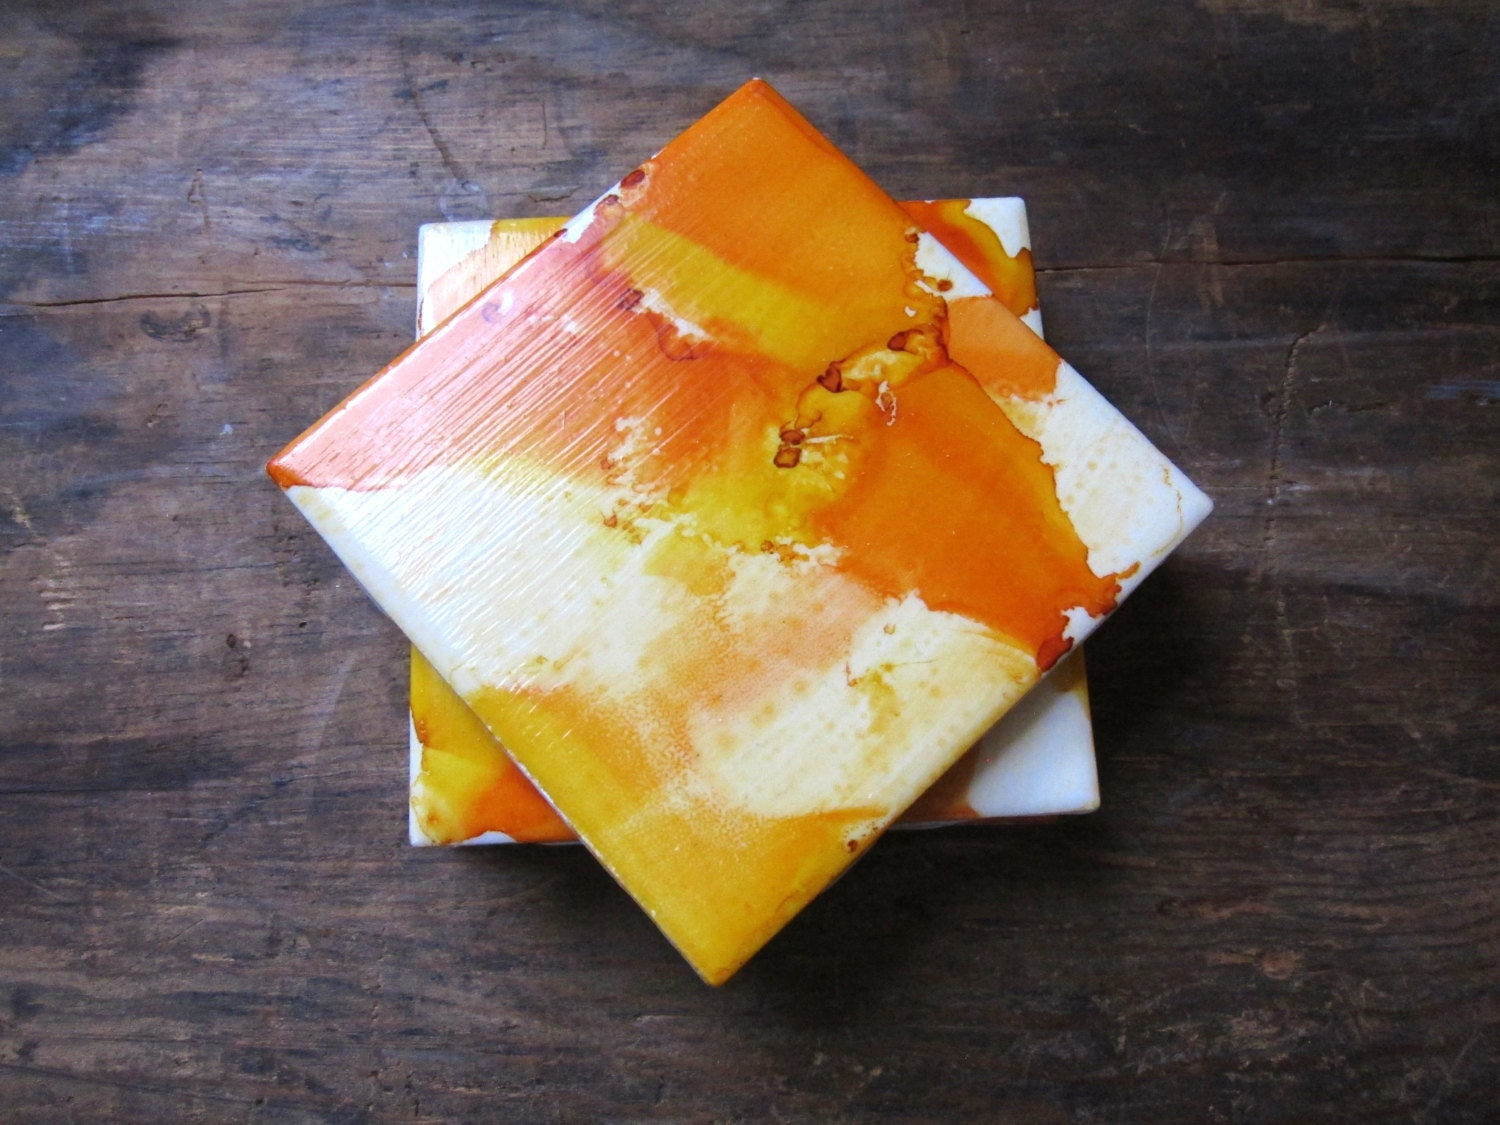 Orange And Yellow Unique Coasters Drink Coasters Tile